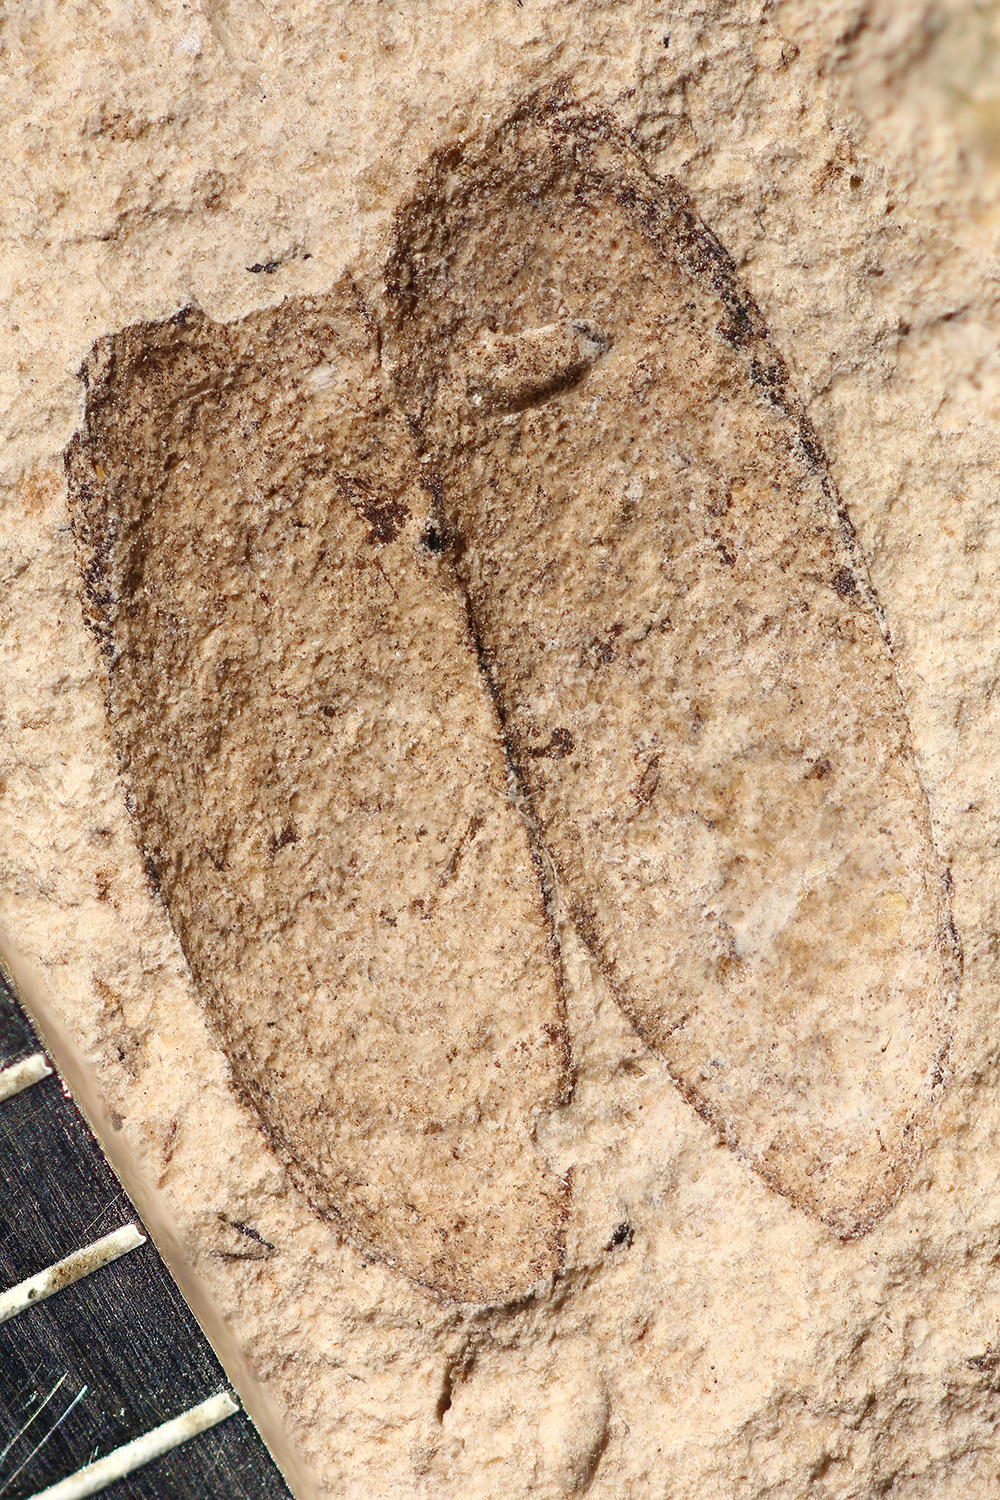 http://mczbase.mcz.harvard.edu/specimen_images/entomology/paleo/large/PALE-14278_Oreina_sp.jpg